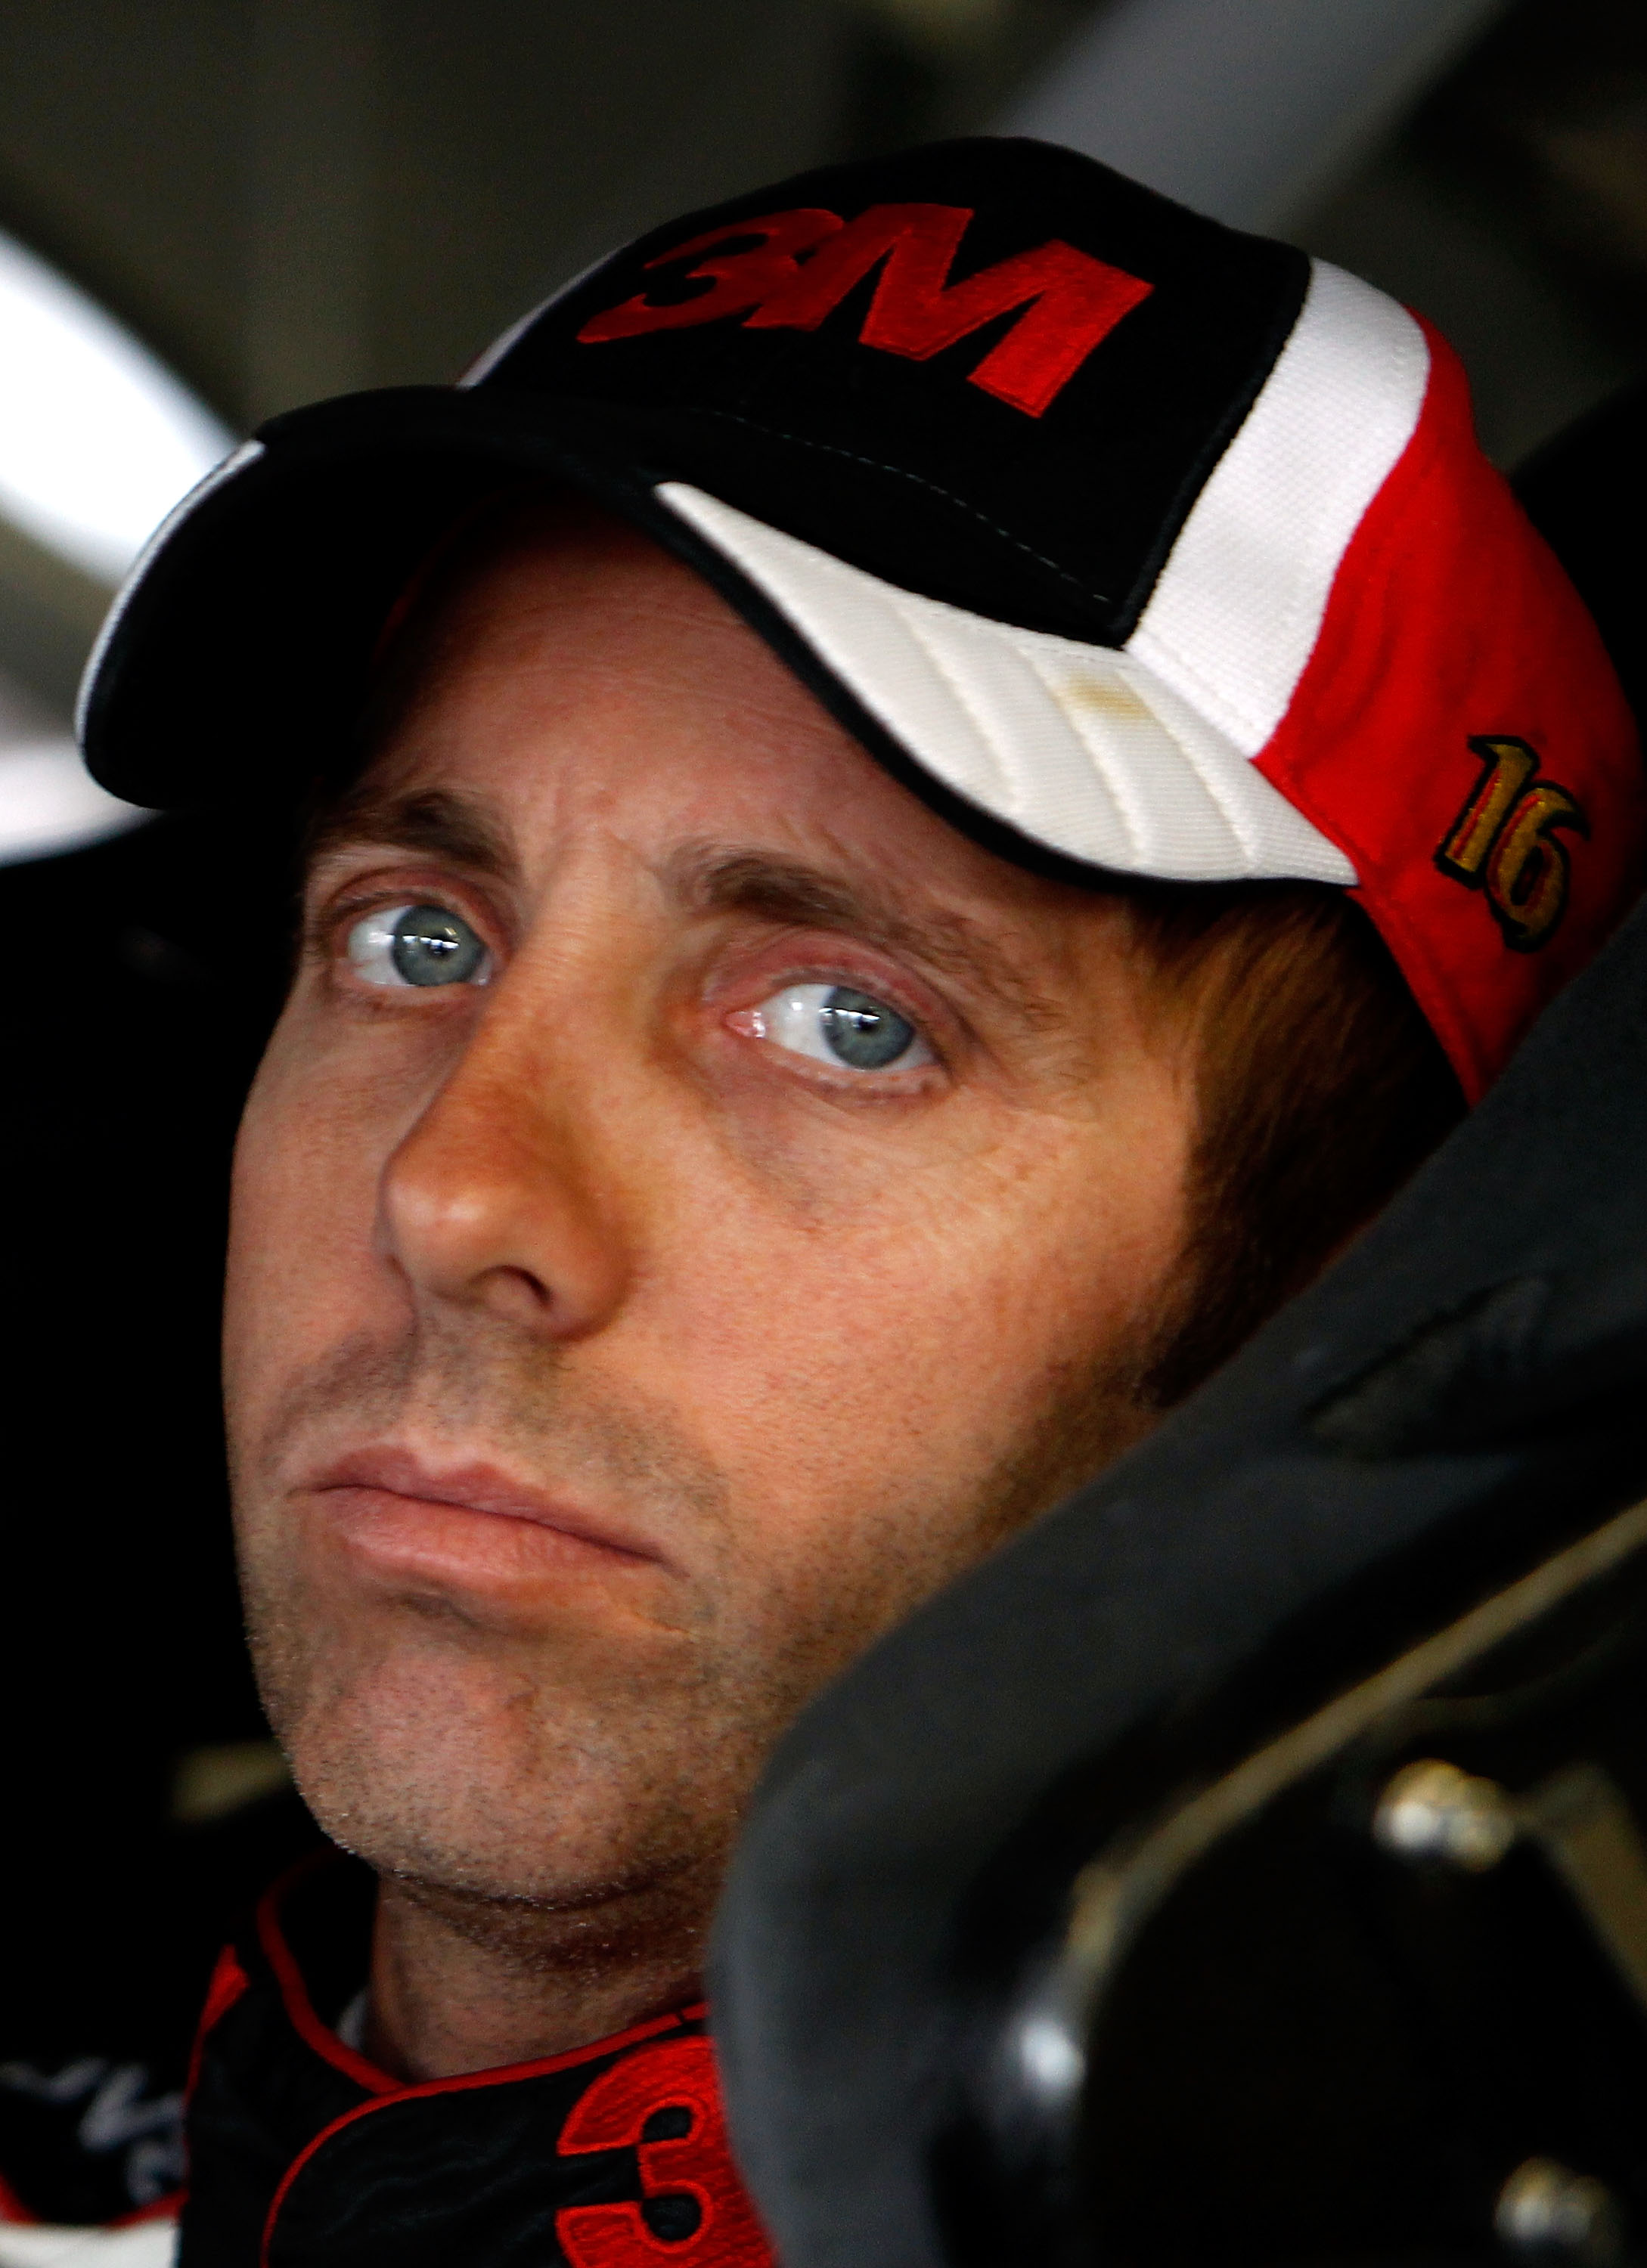 LOUDON, NH - SEPTEMBER 18:  Greg Biffle, driver of the #16 3M Ford, looks on during practice for the NASCAR Sprint Cup Series Sylvania 300 at New Hampshire Motor Speedway on September 18, 2010 in Loudon, New Hampshire.  (Photo by Jeff Zelevansky/Getty Ima